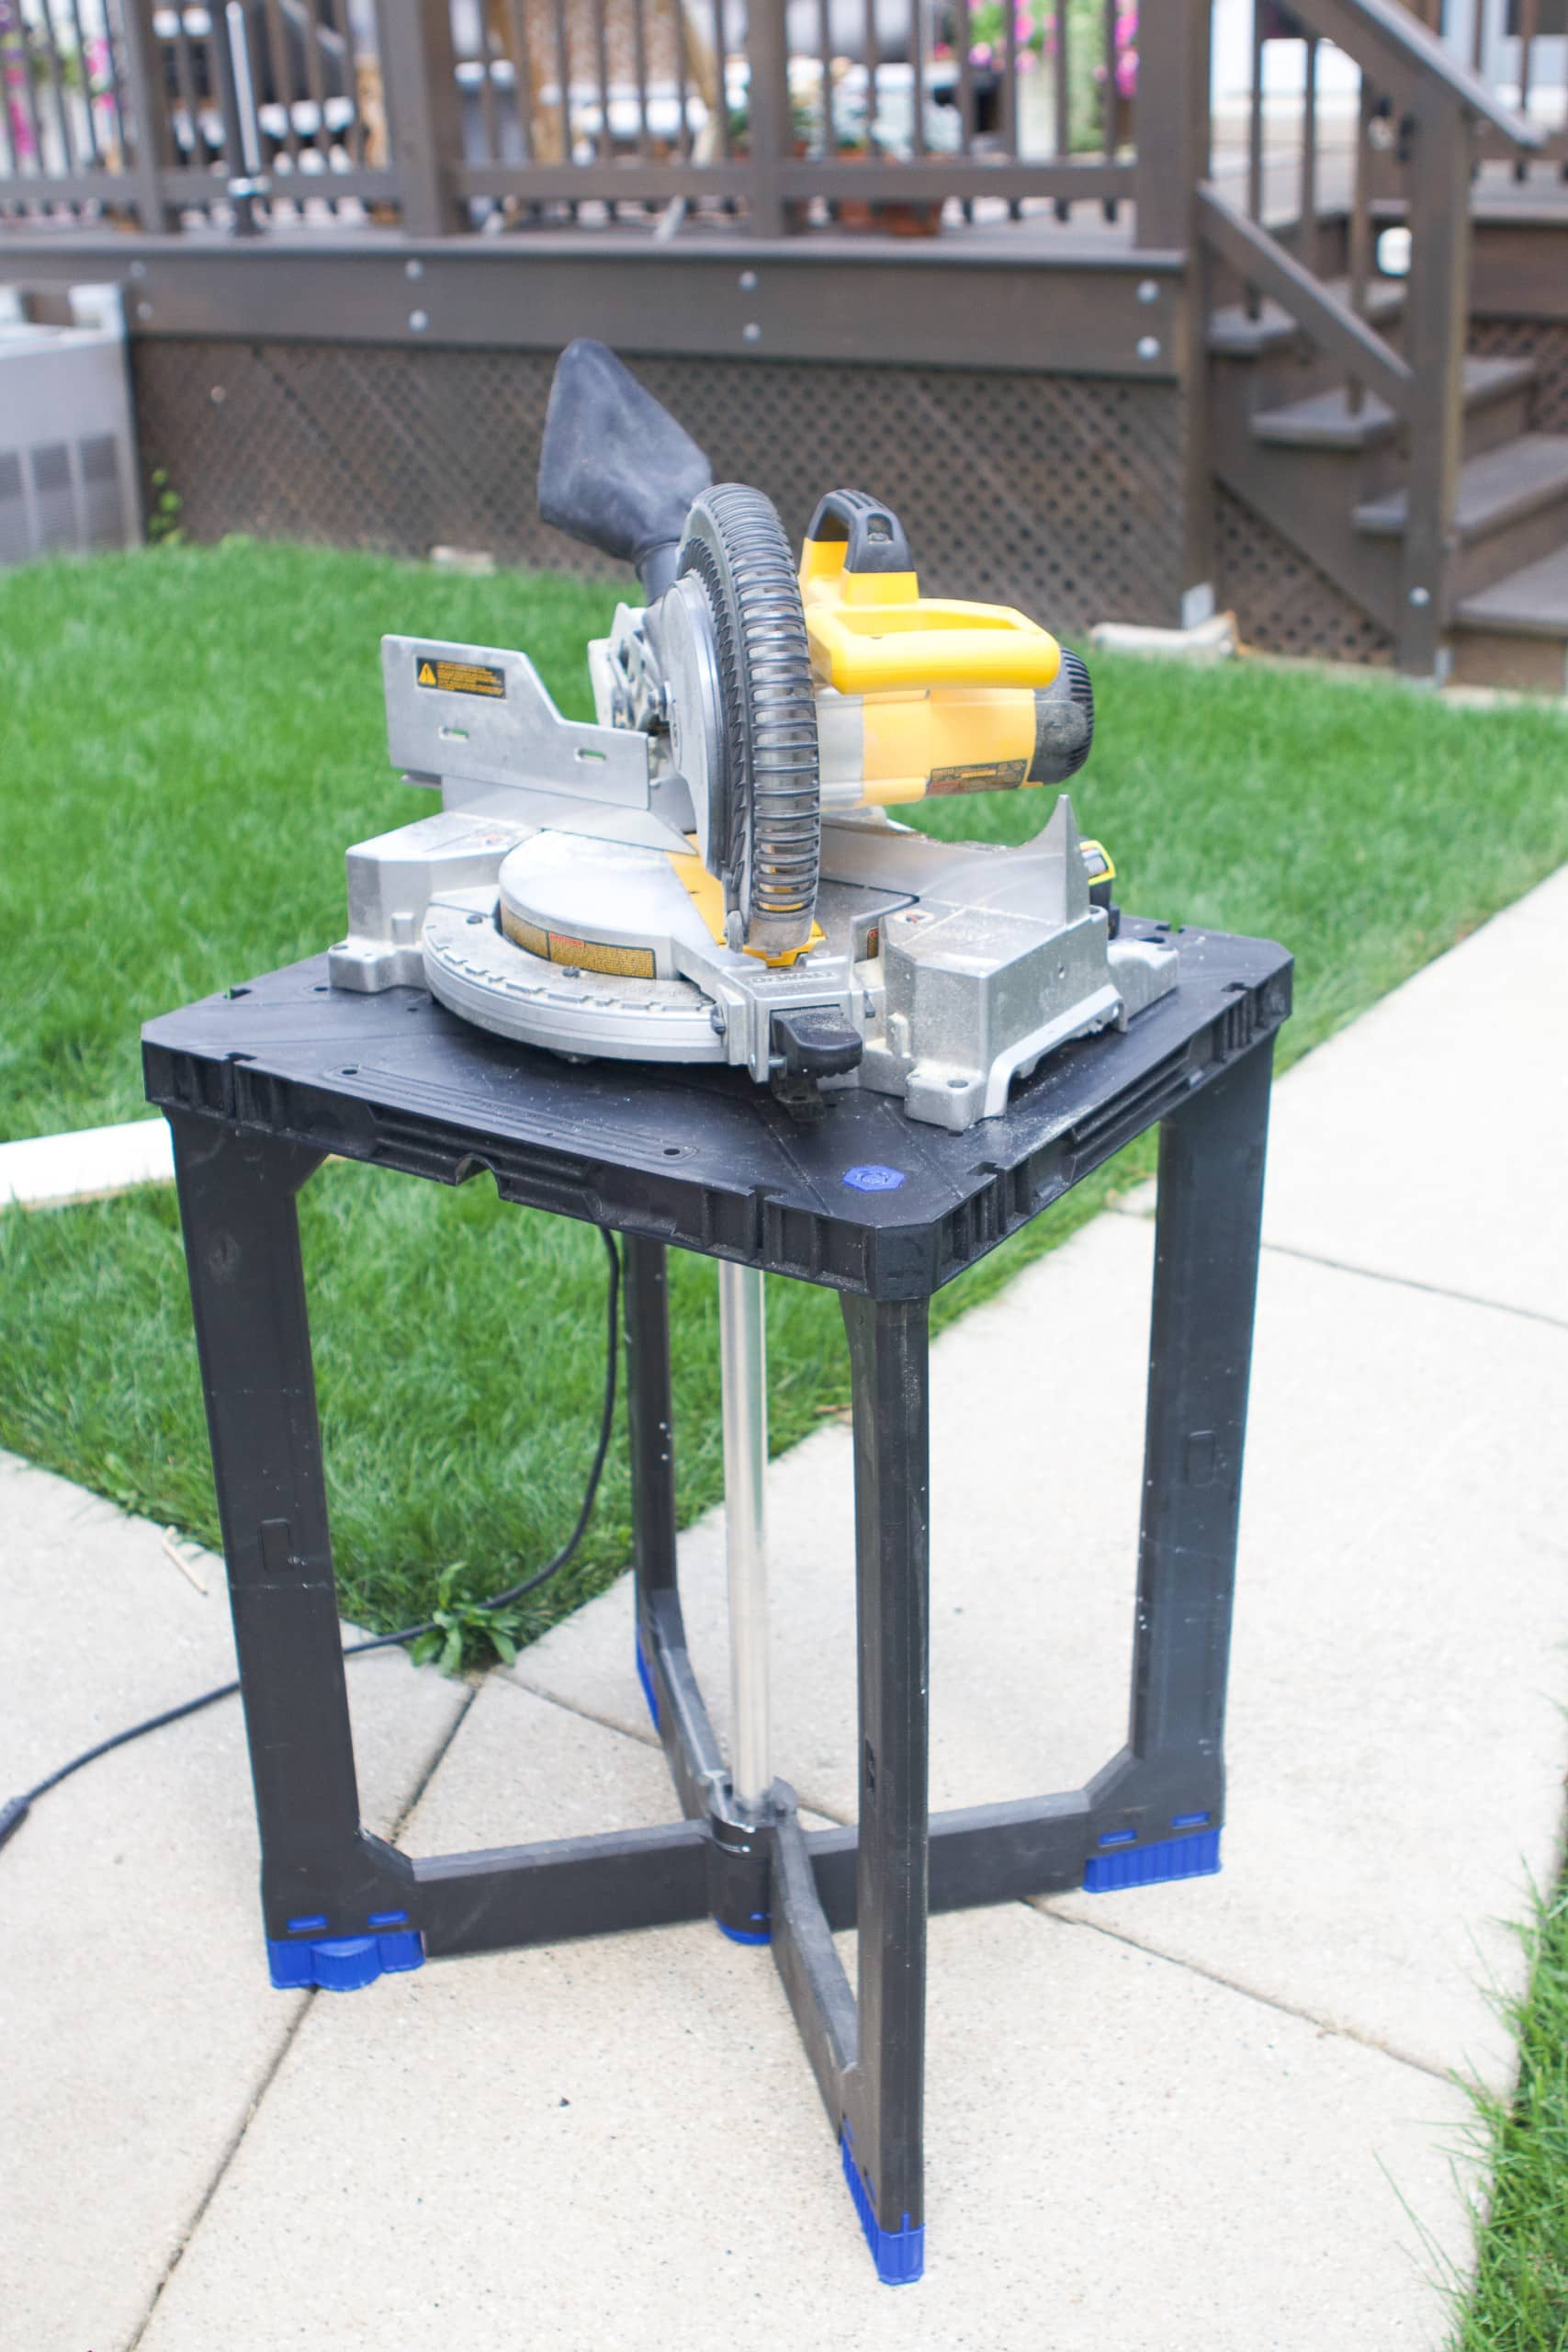 Setting up a miter saw to make simple wood shelves